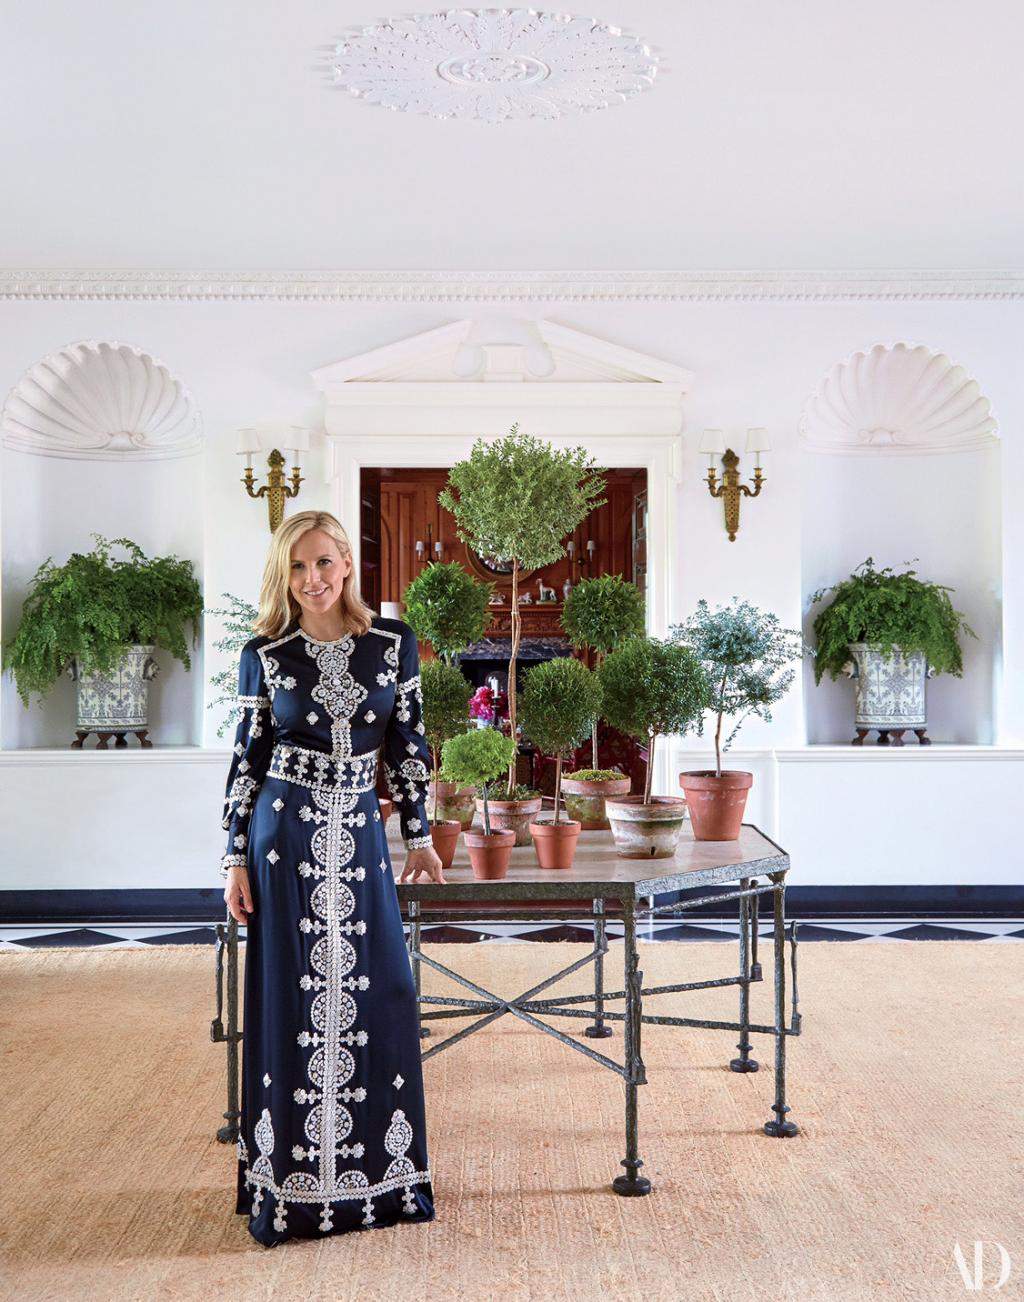 Tory Burch's Epic, 15,000-Square-Foot Summer House is One of the Biggest in the Hamptons: See Inside